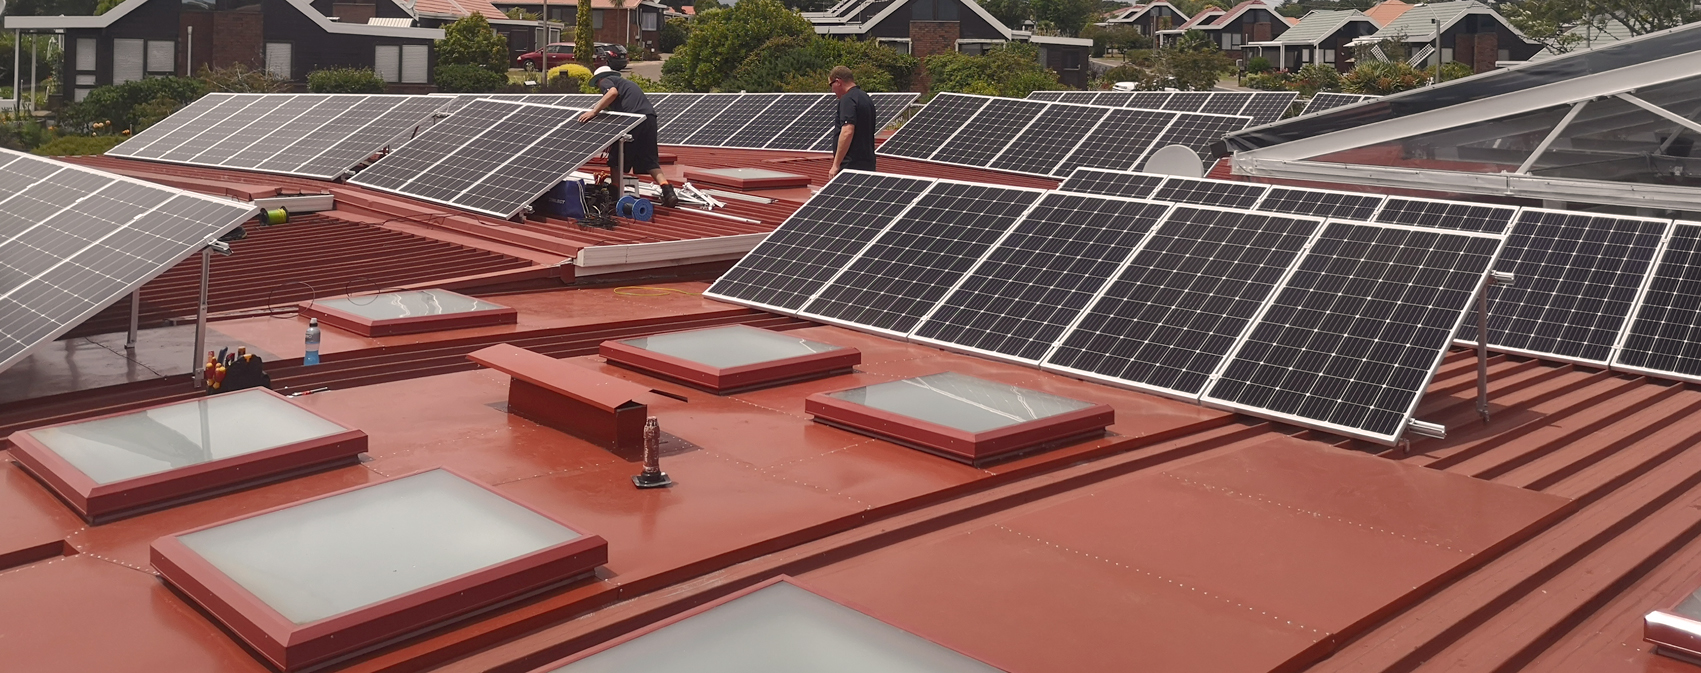 Solar on Retirement Village Rooftop